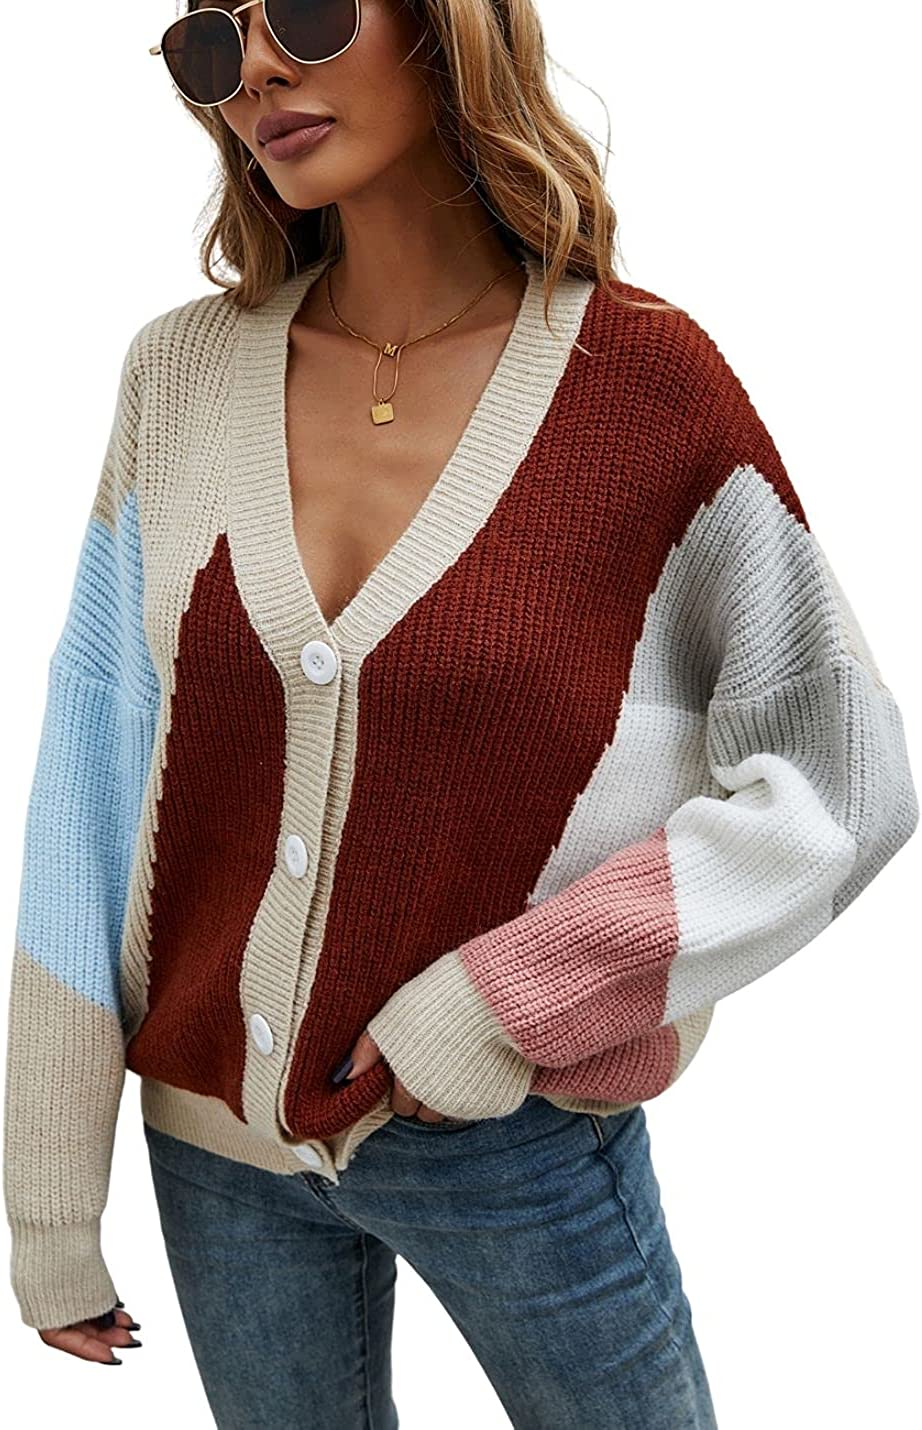 Kwoki Women's Color Block Patchwork Knit Cardigan Casual Button Down V Neck Sweater Shrug